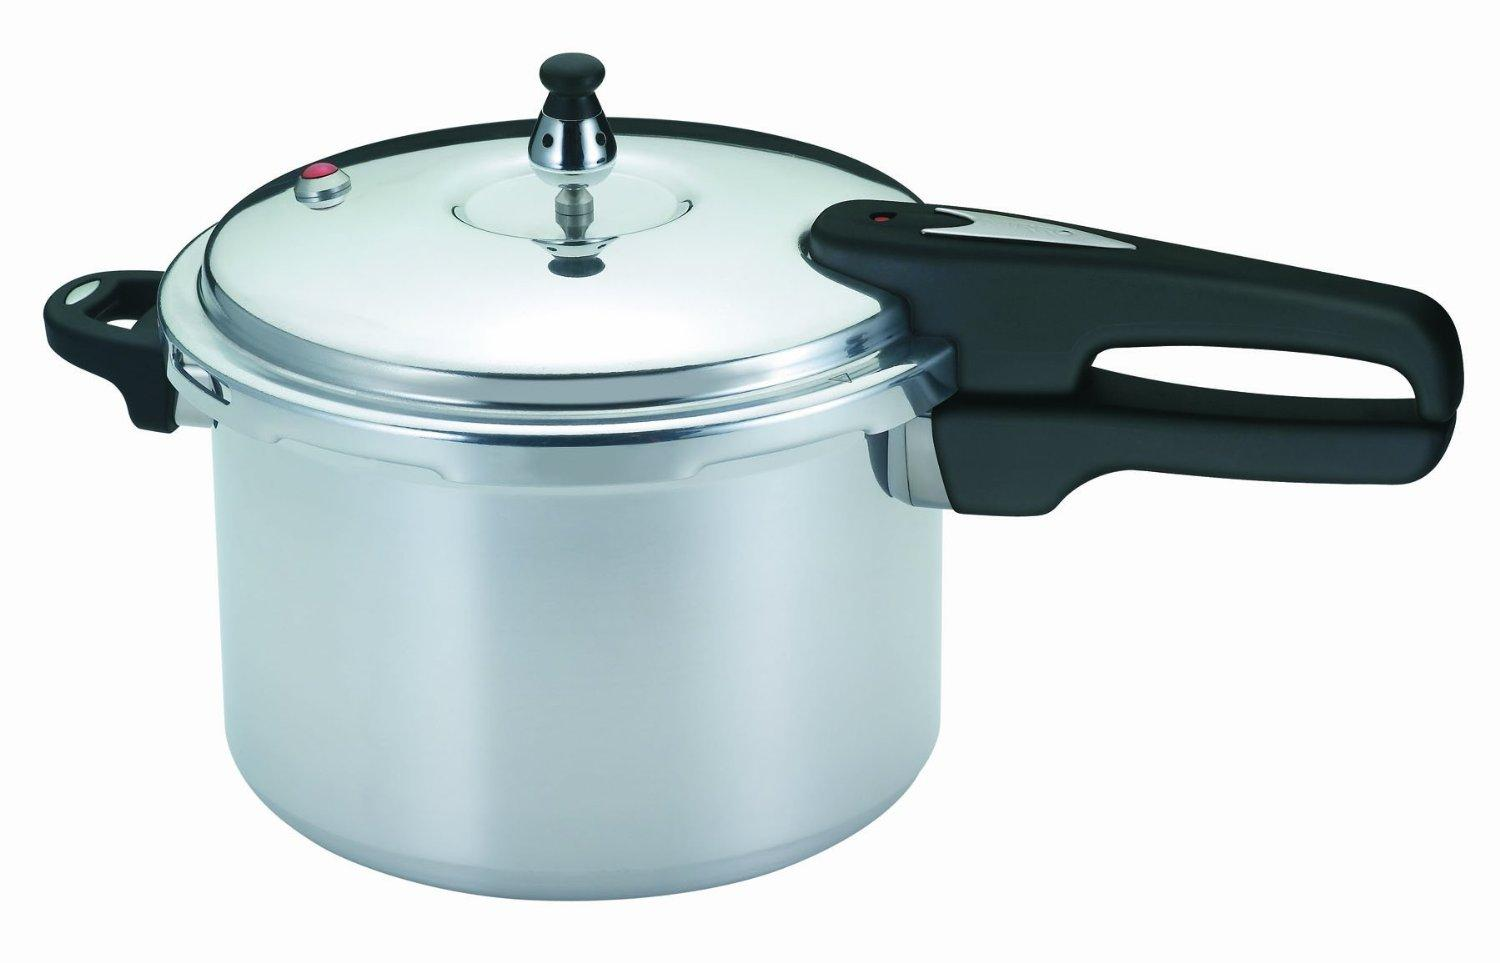 Mirro Polished Aluminum Pressure Cooker, 6-Quart, Silver, Exclusively for Prime Members